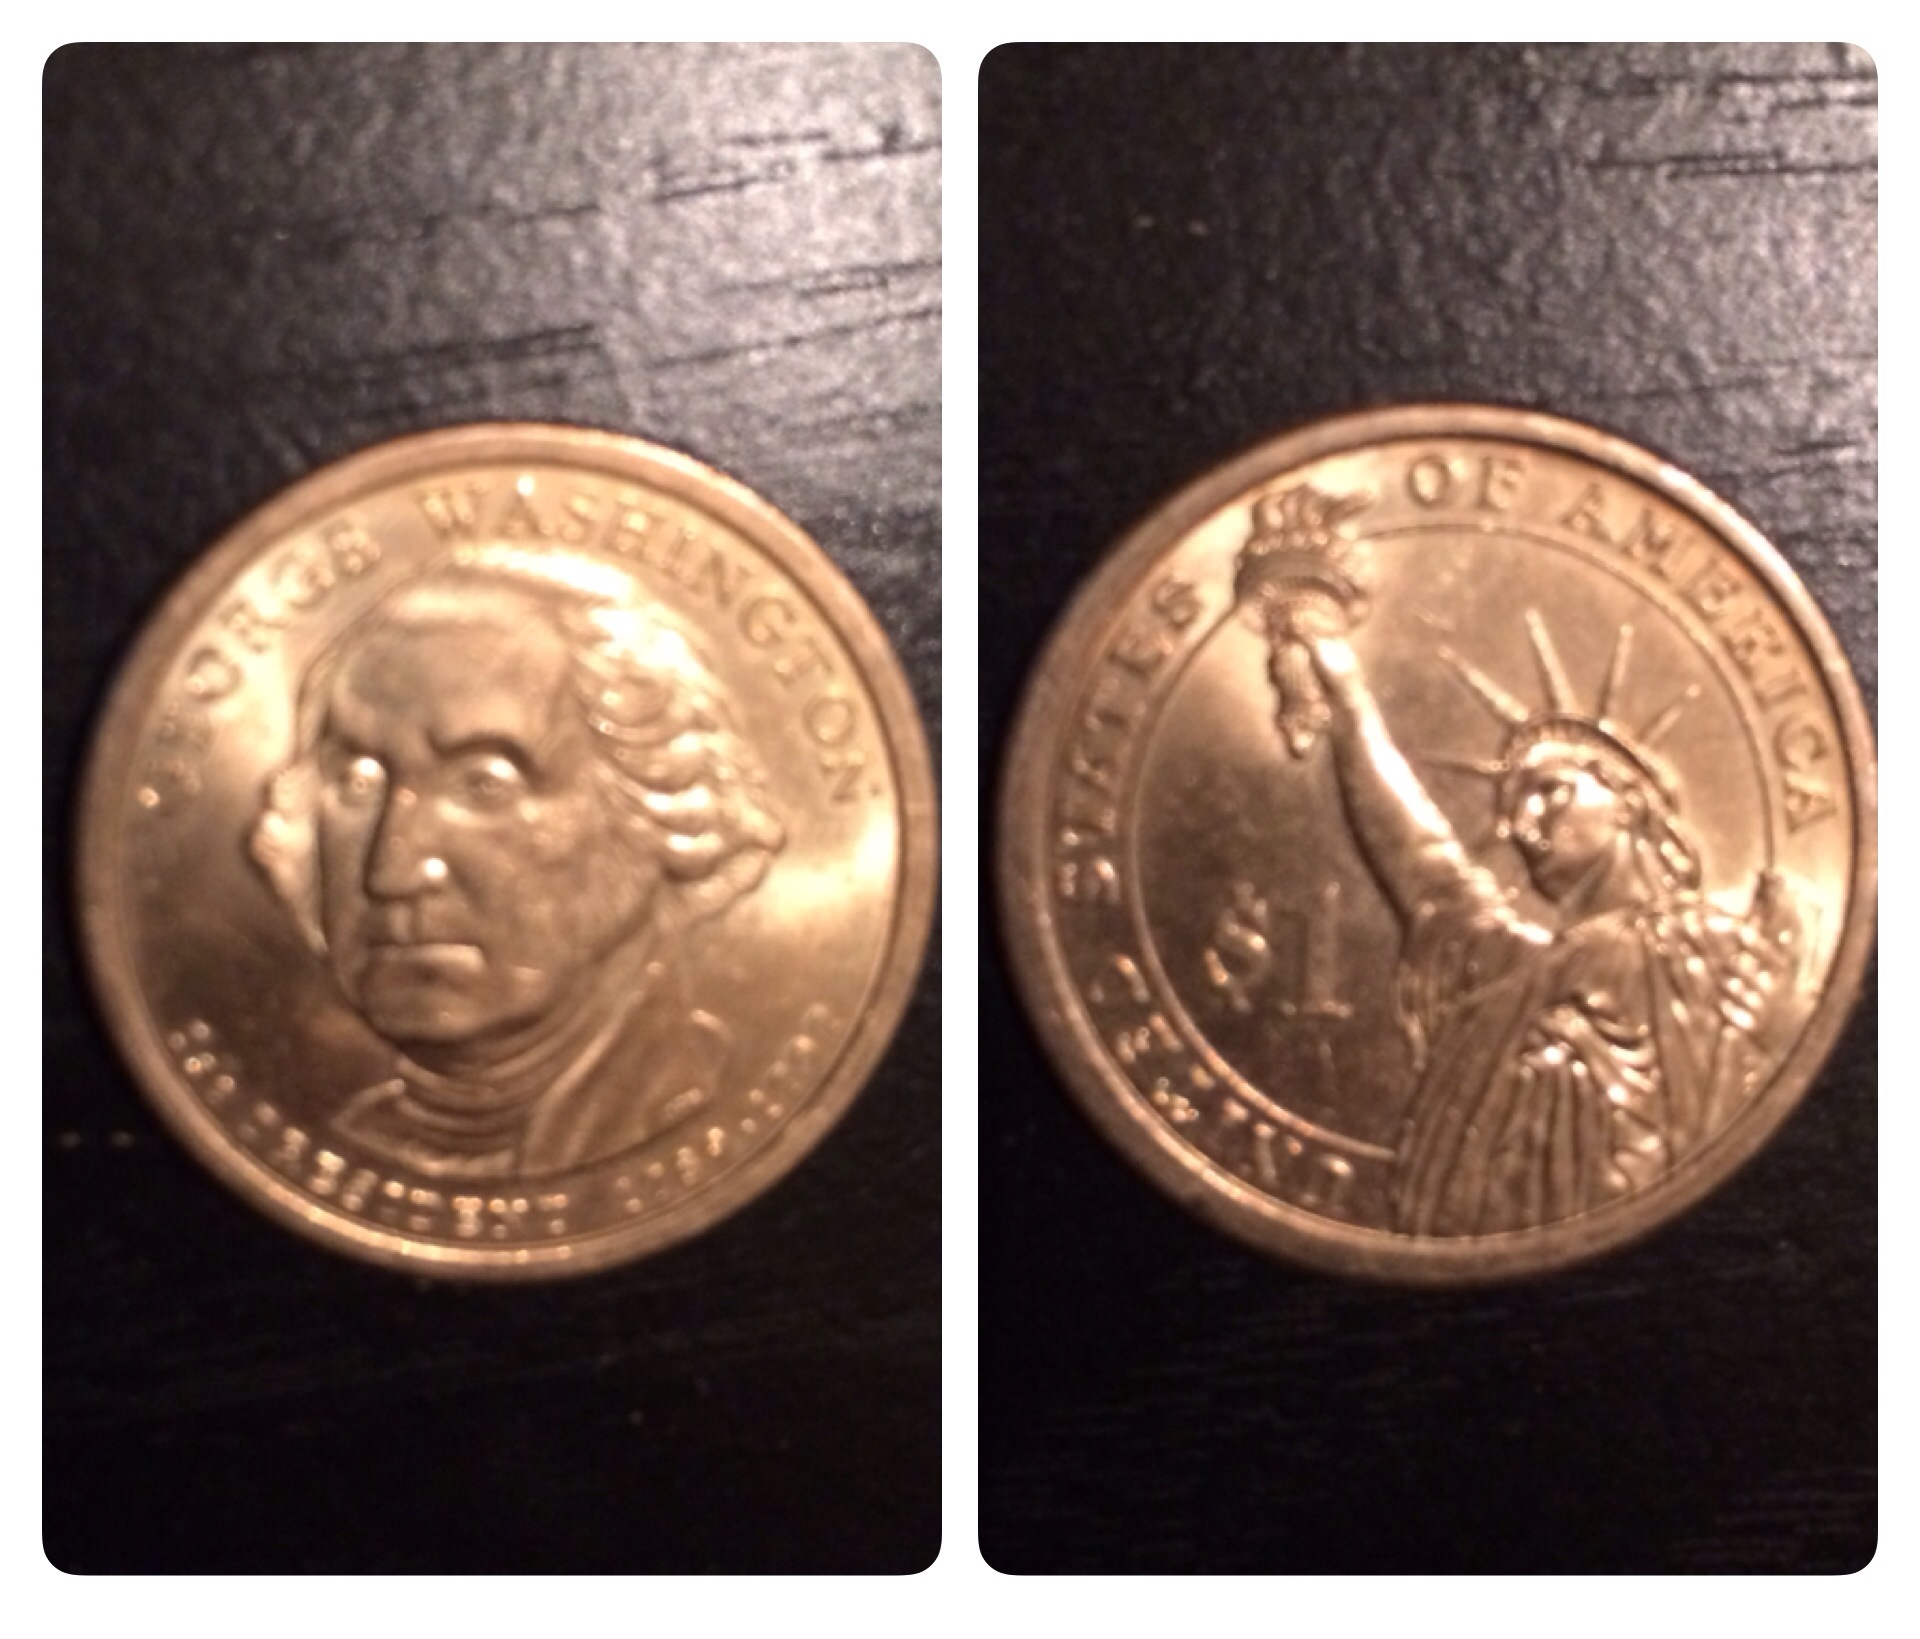 A look at the front and back of a Presidential dollar coin.